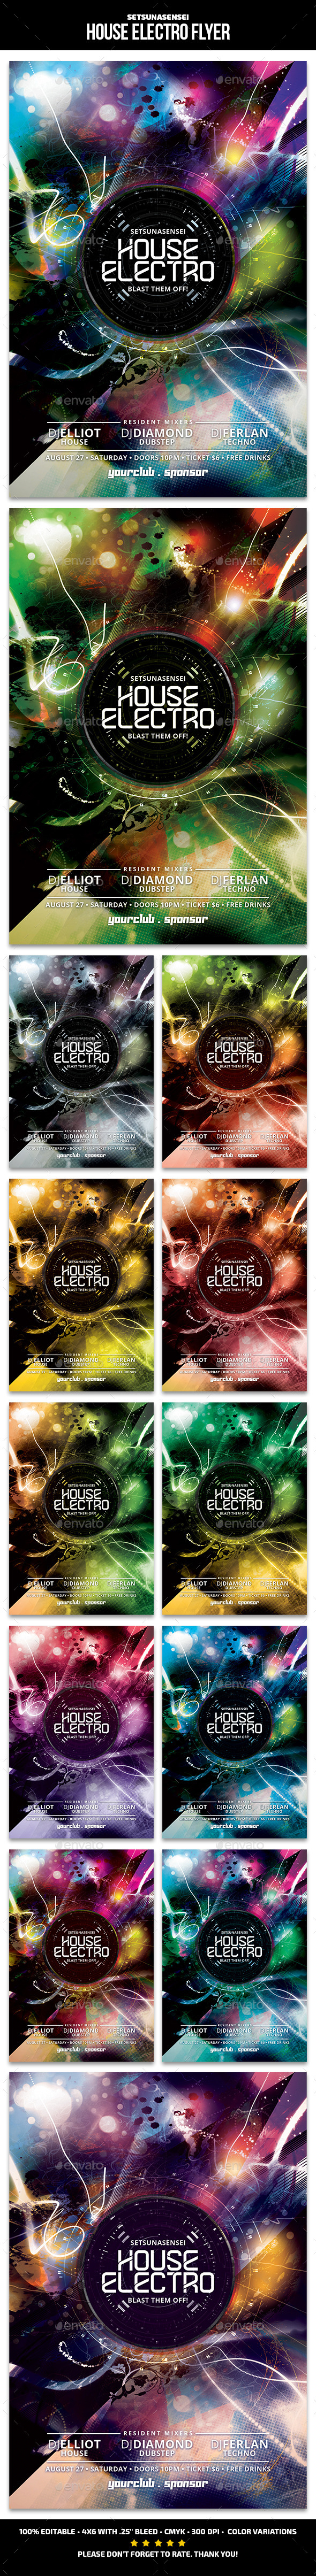 House Electro Flyer - Clubs & Parties Events